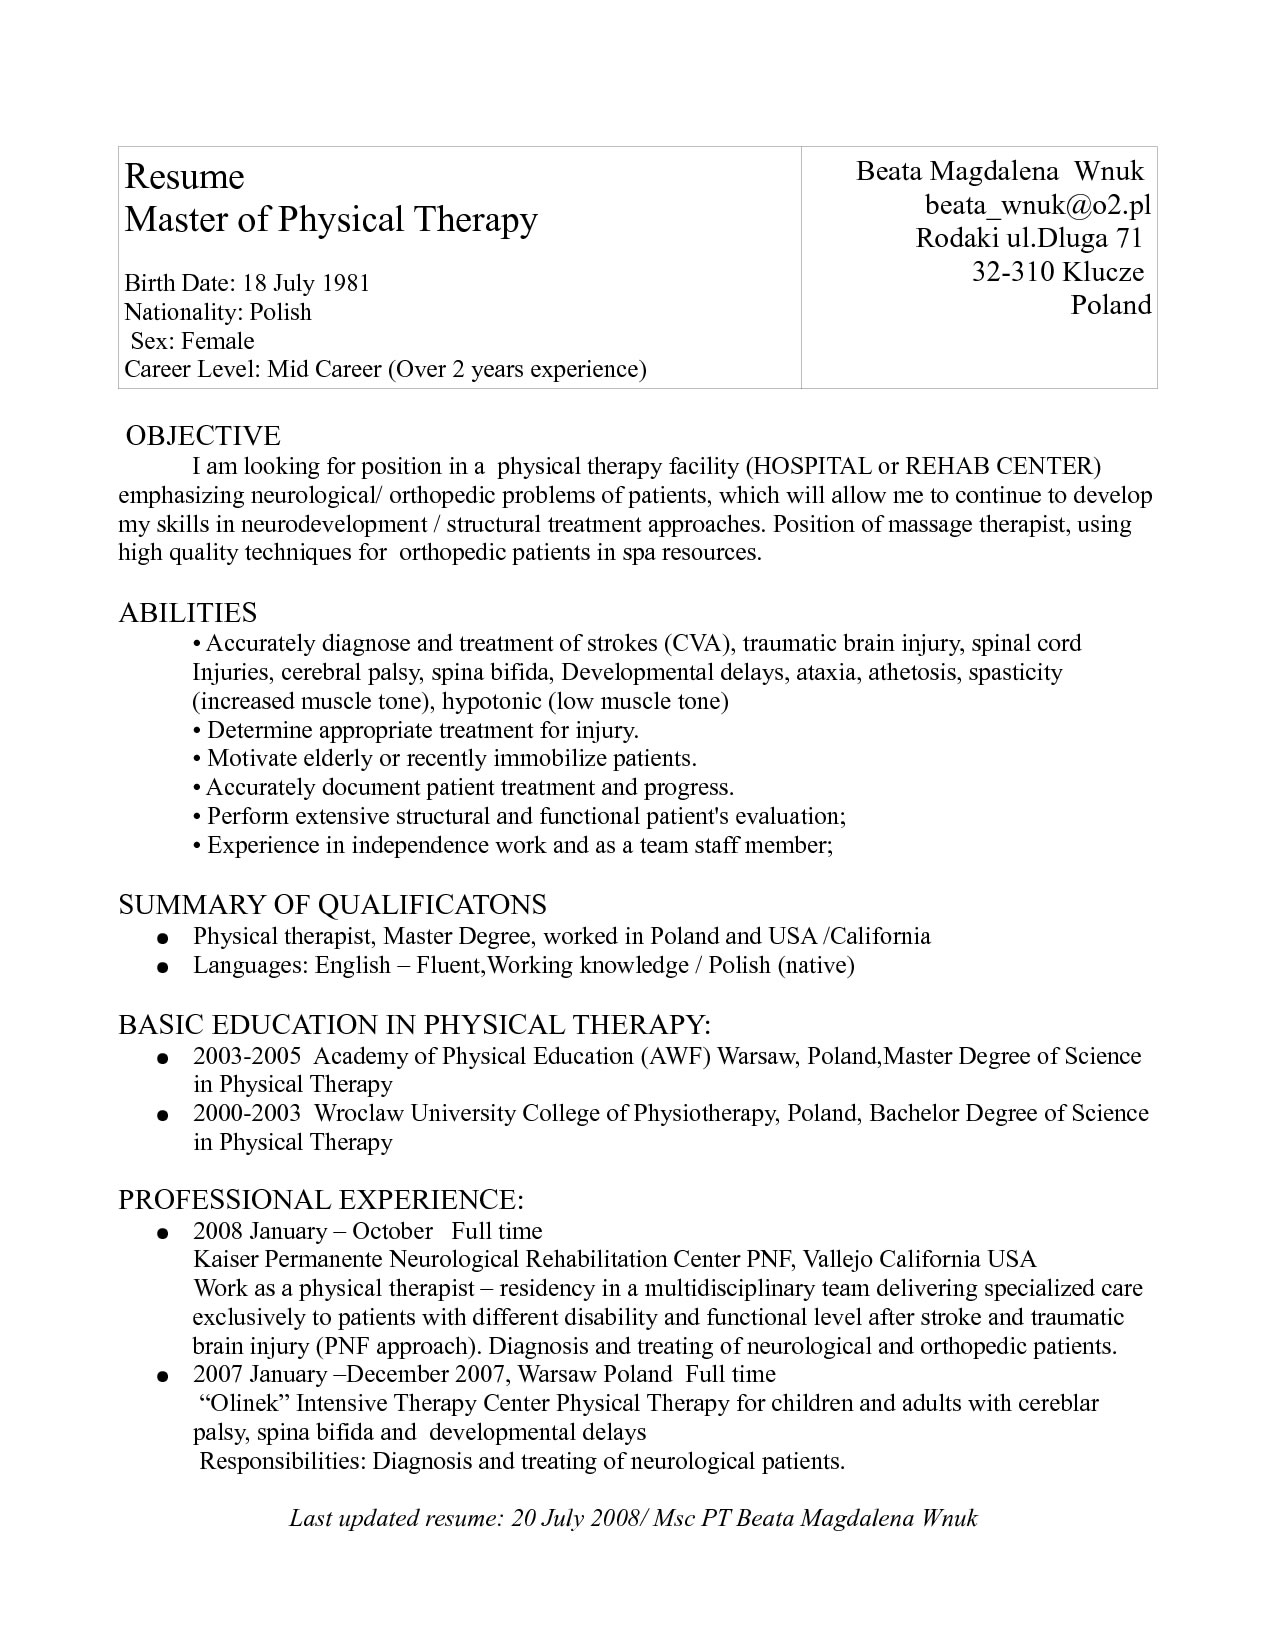 physical therapy application essay examples sample personal  essay about physical therapy physical therapy application essay examples how to write your essay about physical